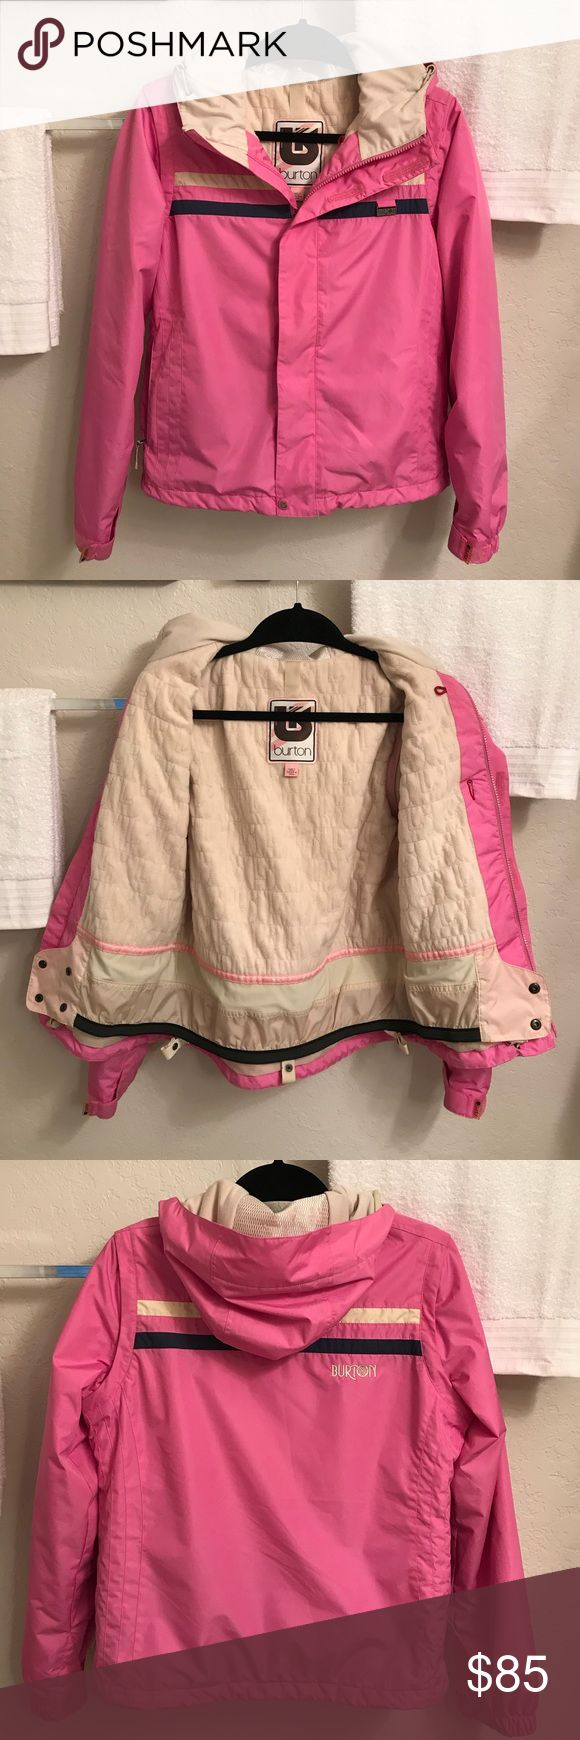 Burton Snowboard Jacket This pink jacket is fully lined, has a zipper/Velcro front closure, is hooded, has 2 bottom side zipper pockets, has stripes on the front & back with the logo.  This jacket is in excellent condition(only flaw is tiny stains on both bottom sleeves. . Not Very visible) .  The chest measures 42 inches & the length is 25 inches long. Burton Jackets & Coats